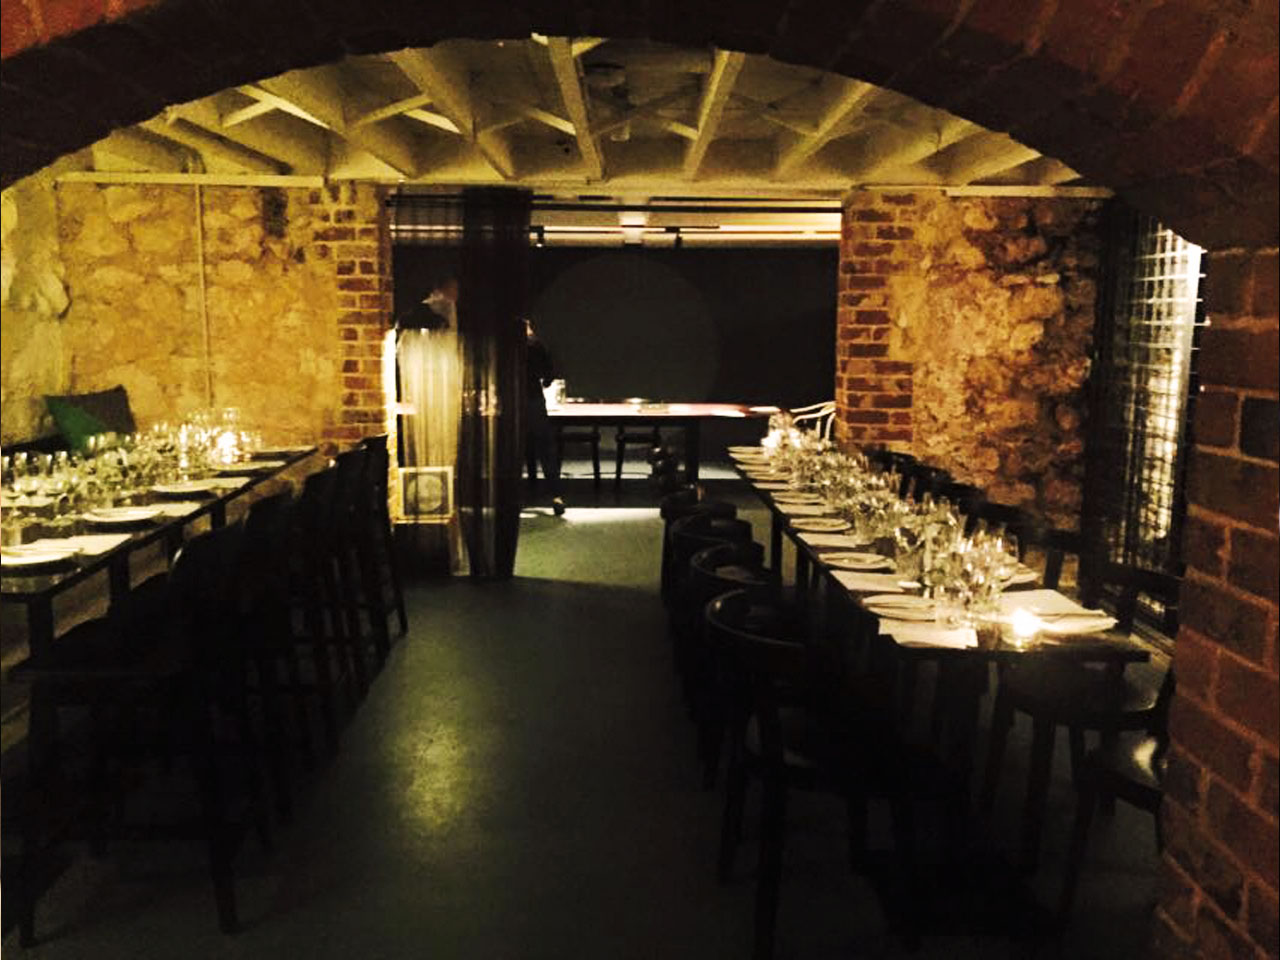 Inside The Small Venue With Brick Walls And Variety Of Chairs And Tables